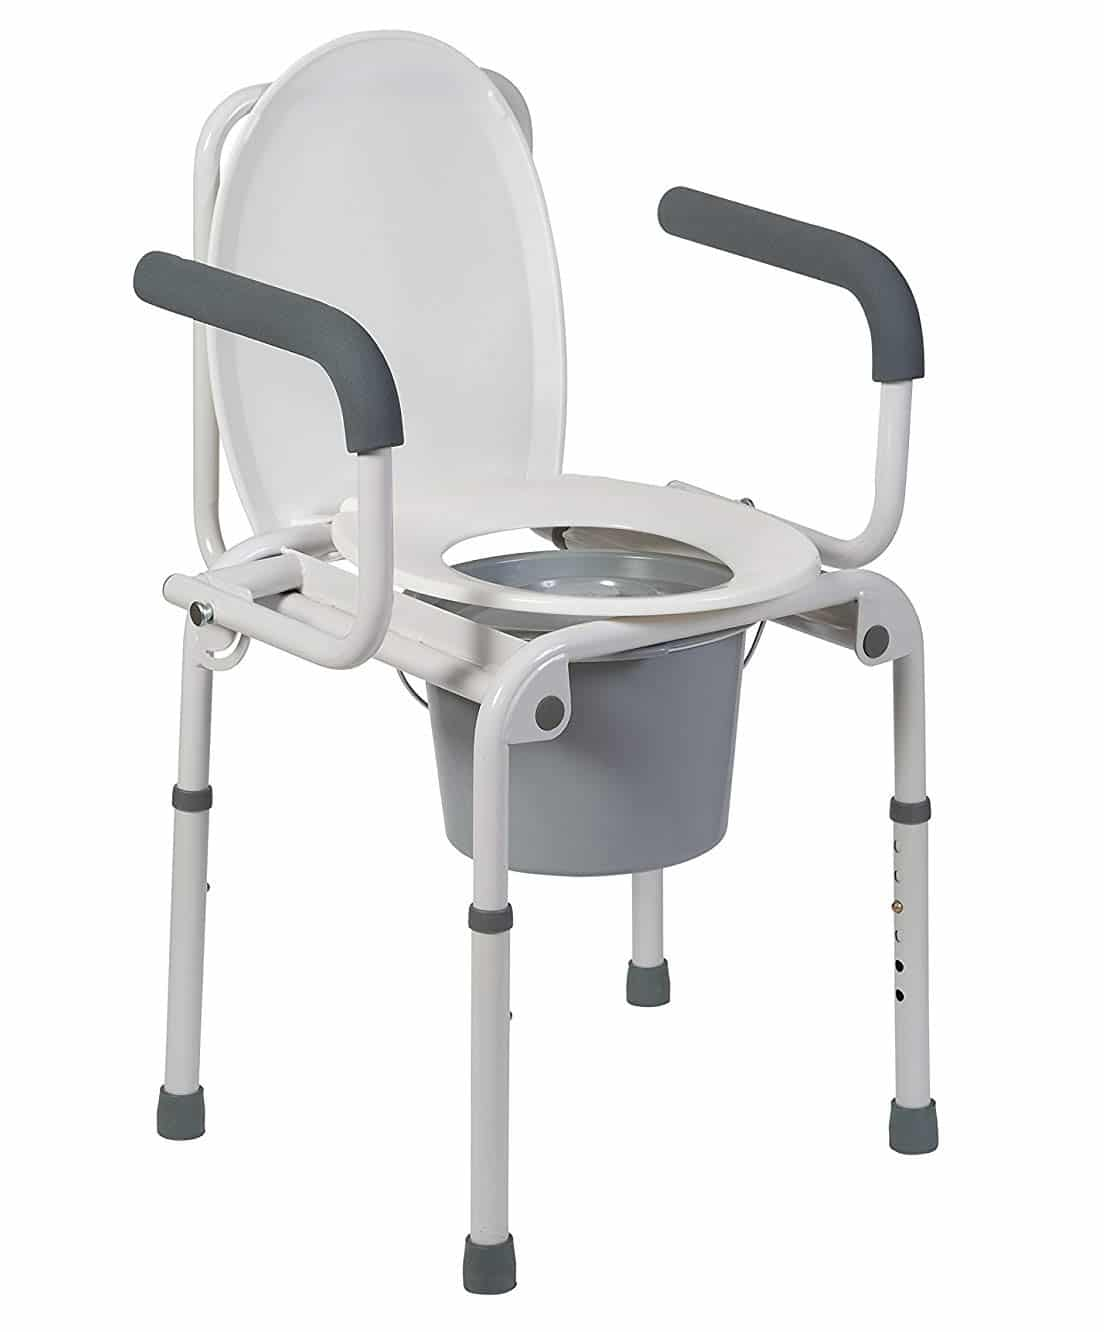 Duro-Med Deluxe Commode - Best for Medical Purpose